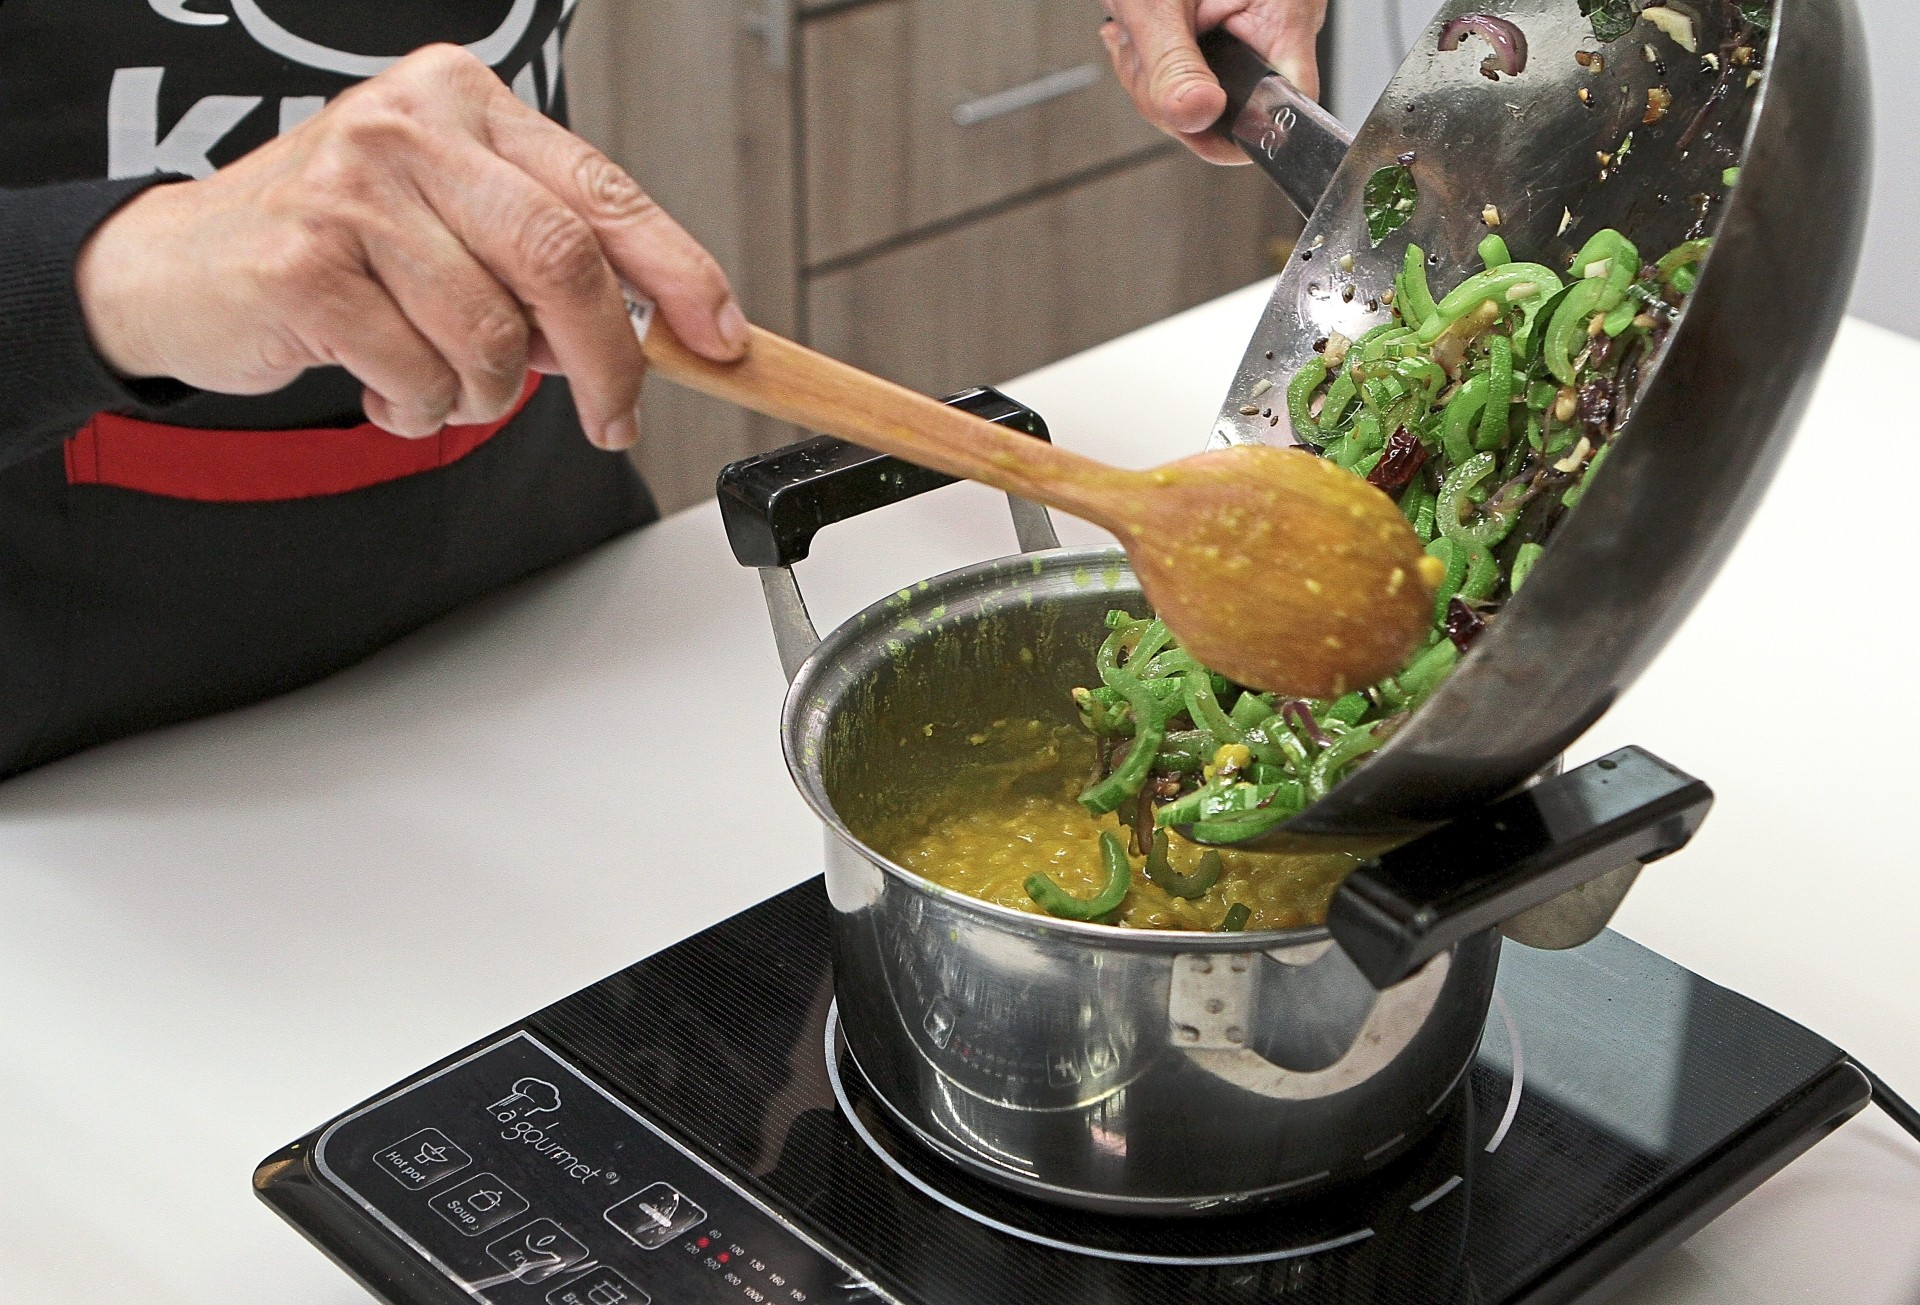 Add the stir-fried snake gourd into the cooked dhal.